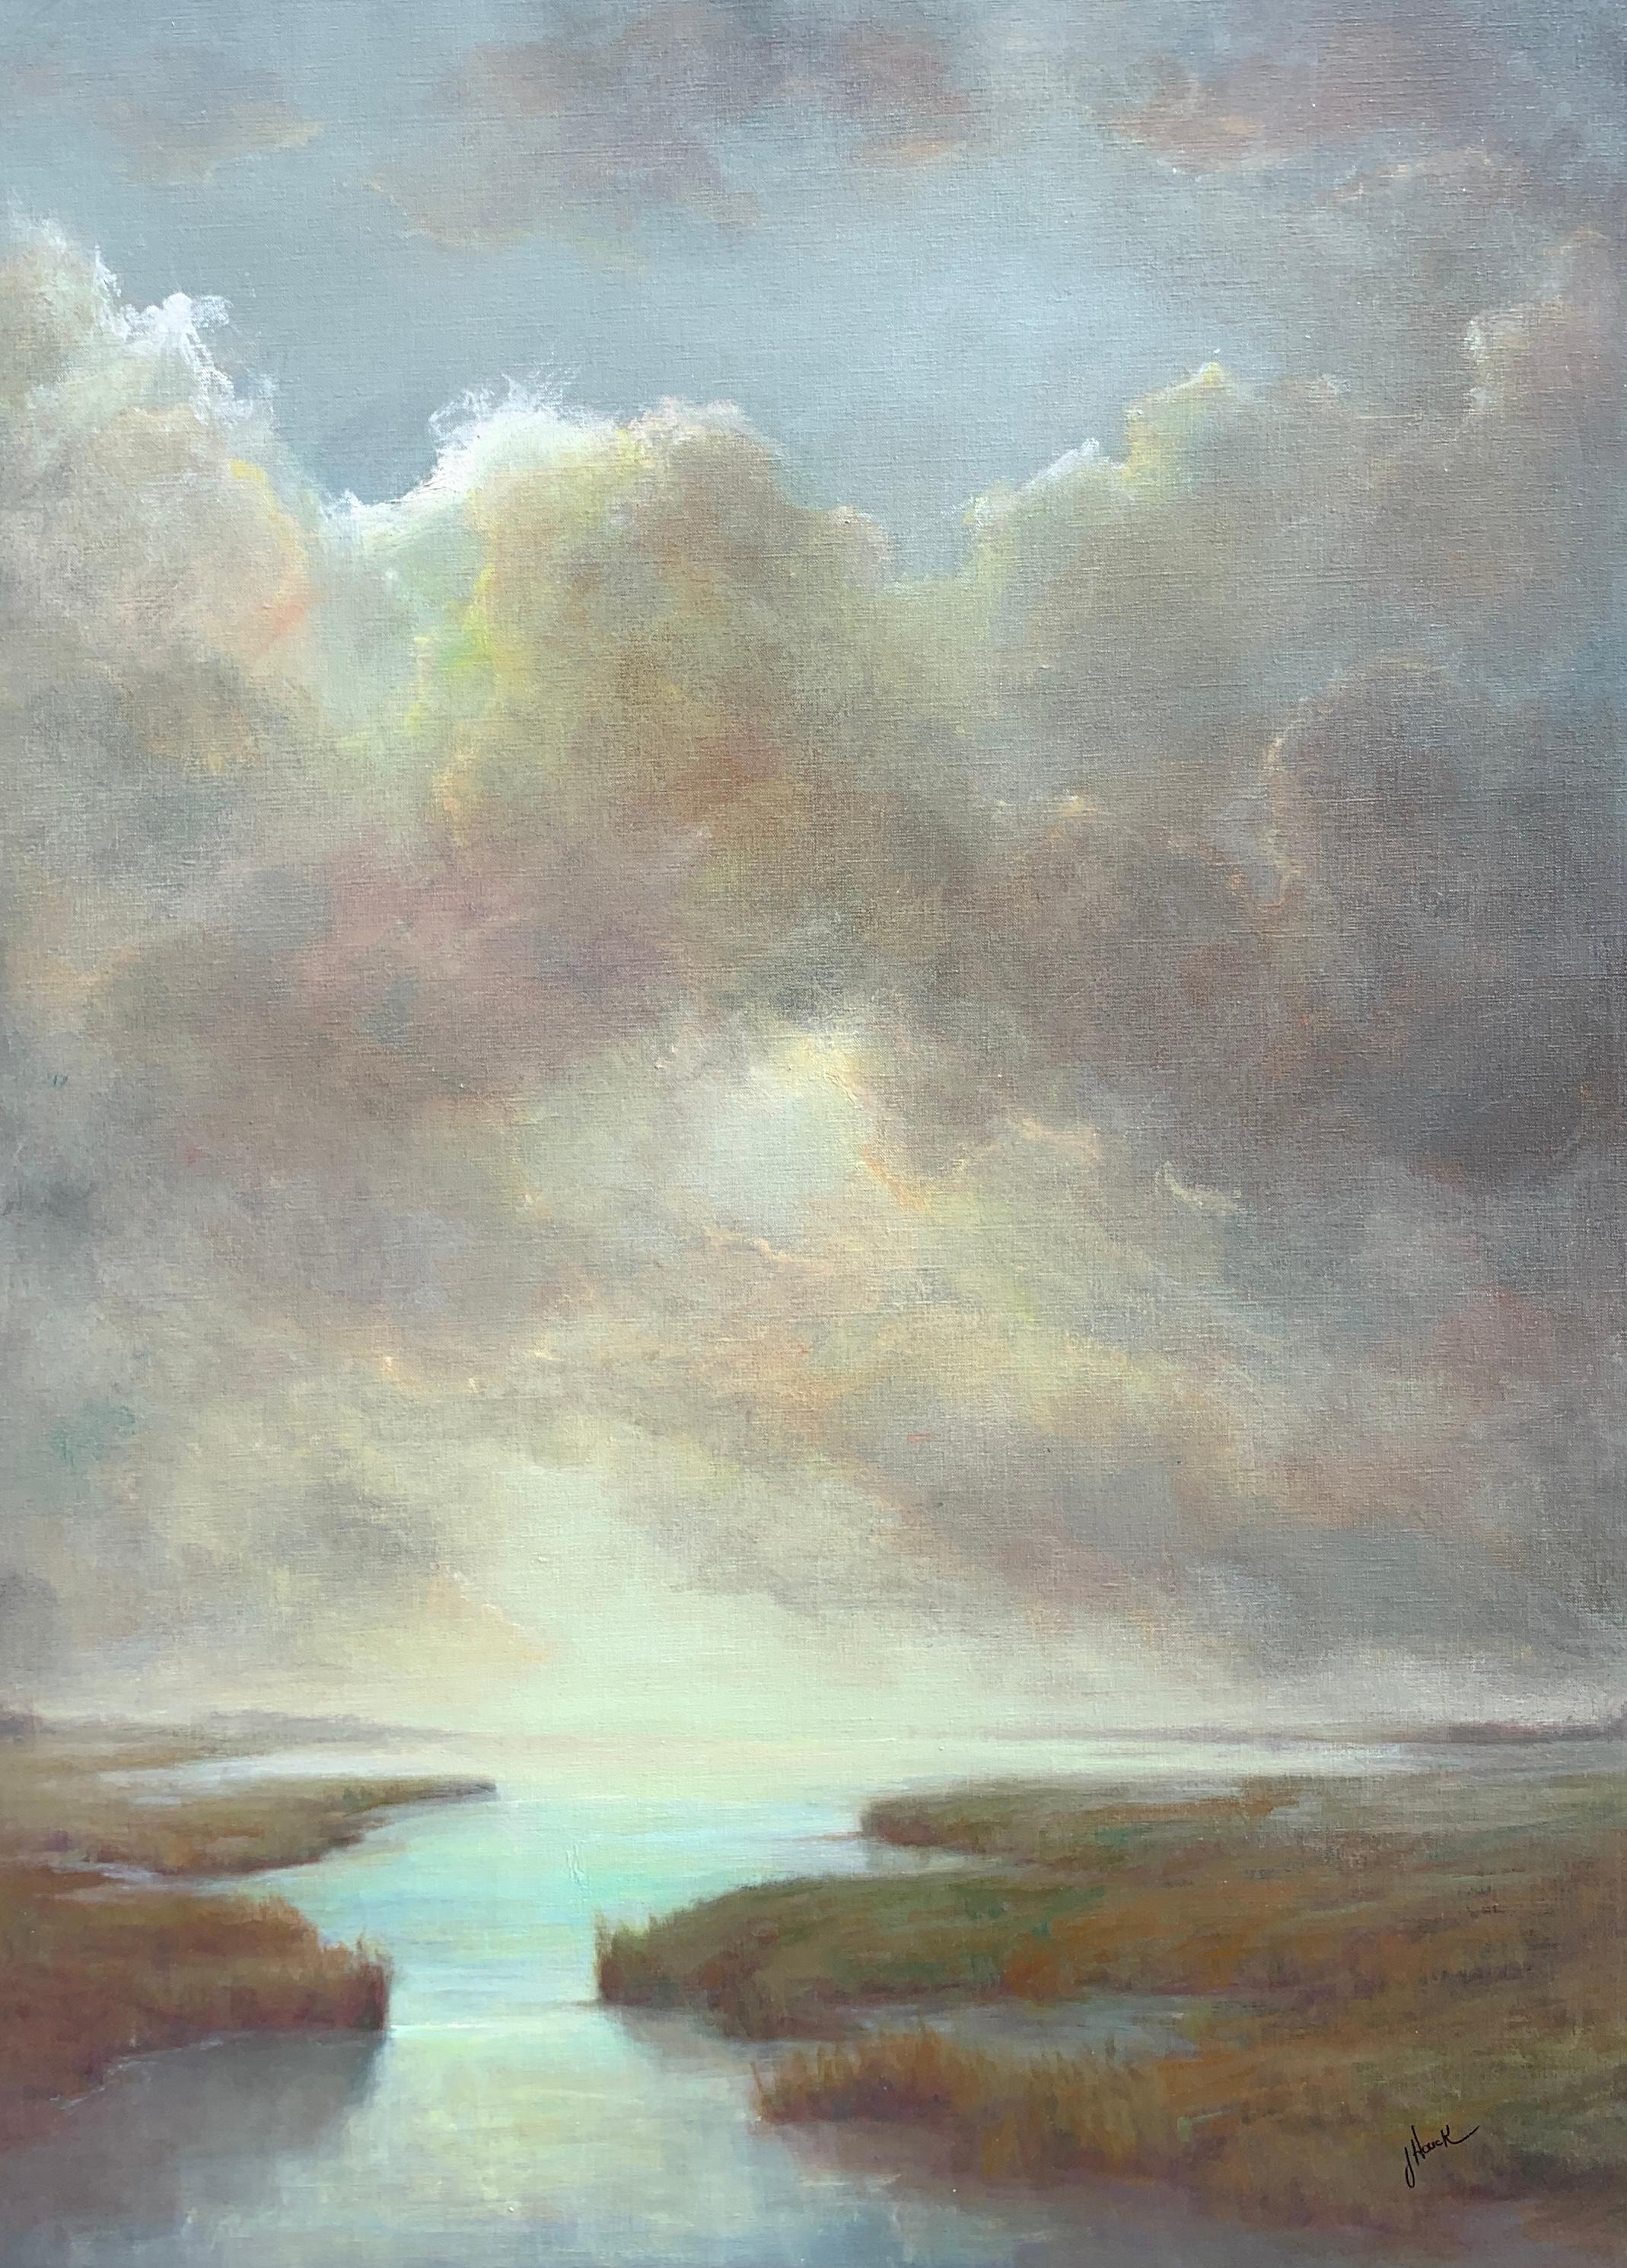 Ascension #2 by Julie Houck, Oil on Linen Post-Impressionist Painting with Blue